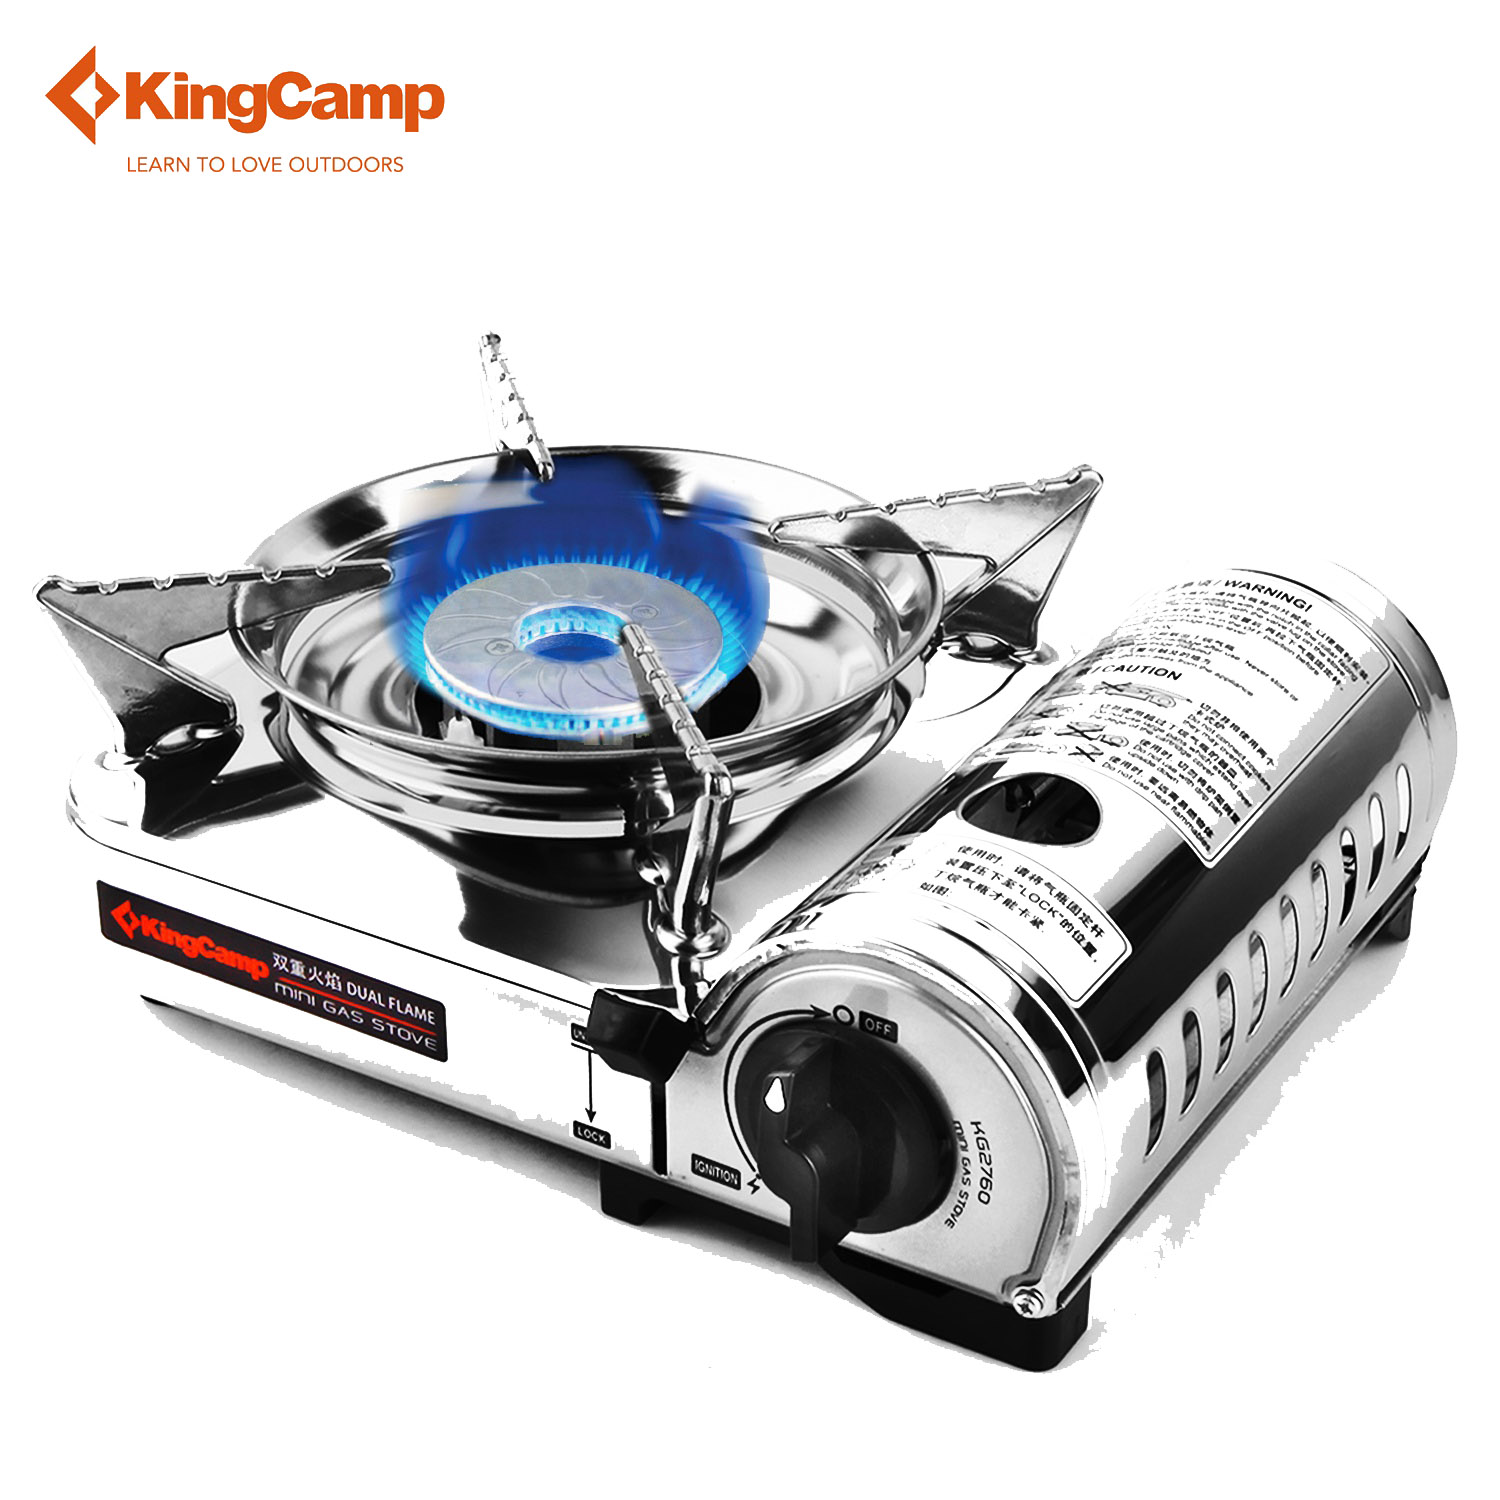 KingCamp <font><b>Stove</b></font> Outdoor Furnace Portable Gas Stainless Steel Camping for Hiking Picnic Cooking Windproof Camping Lightweight Stov